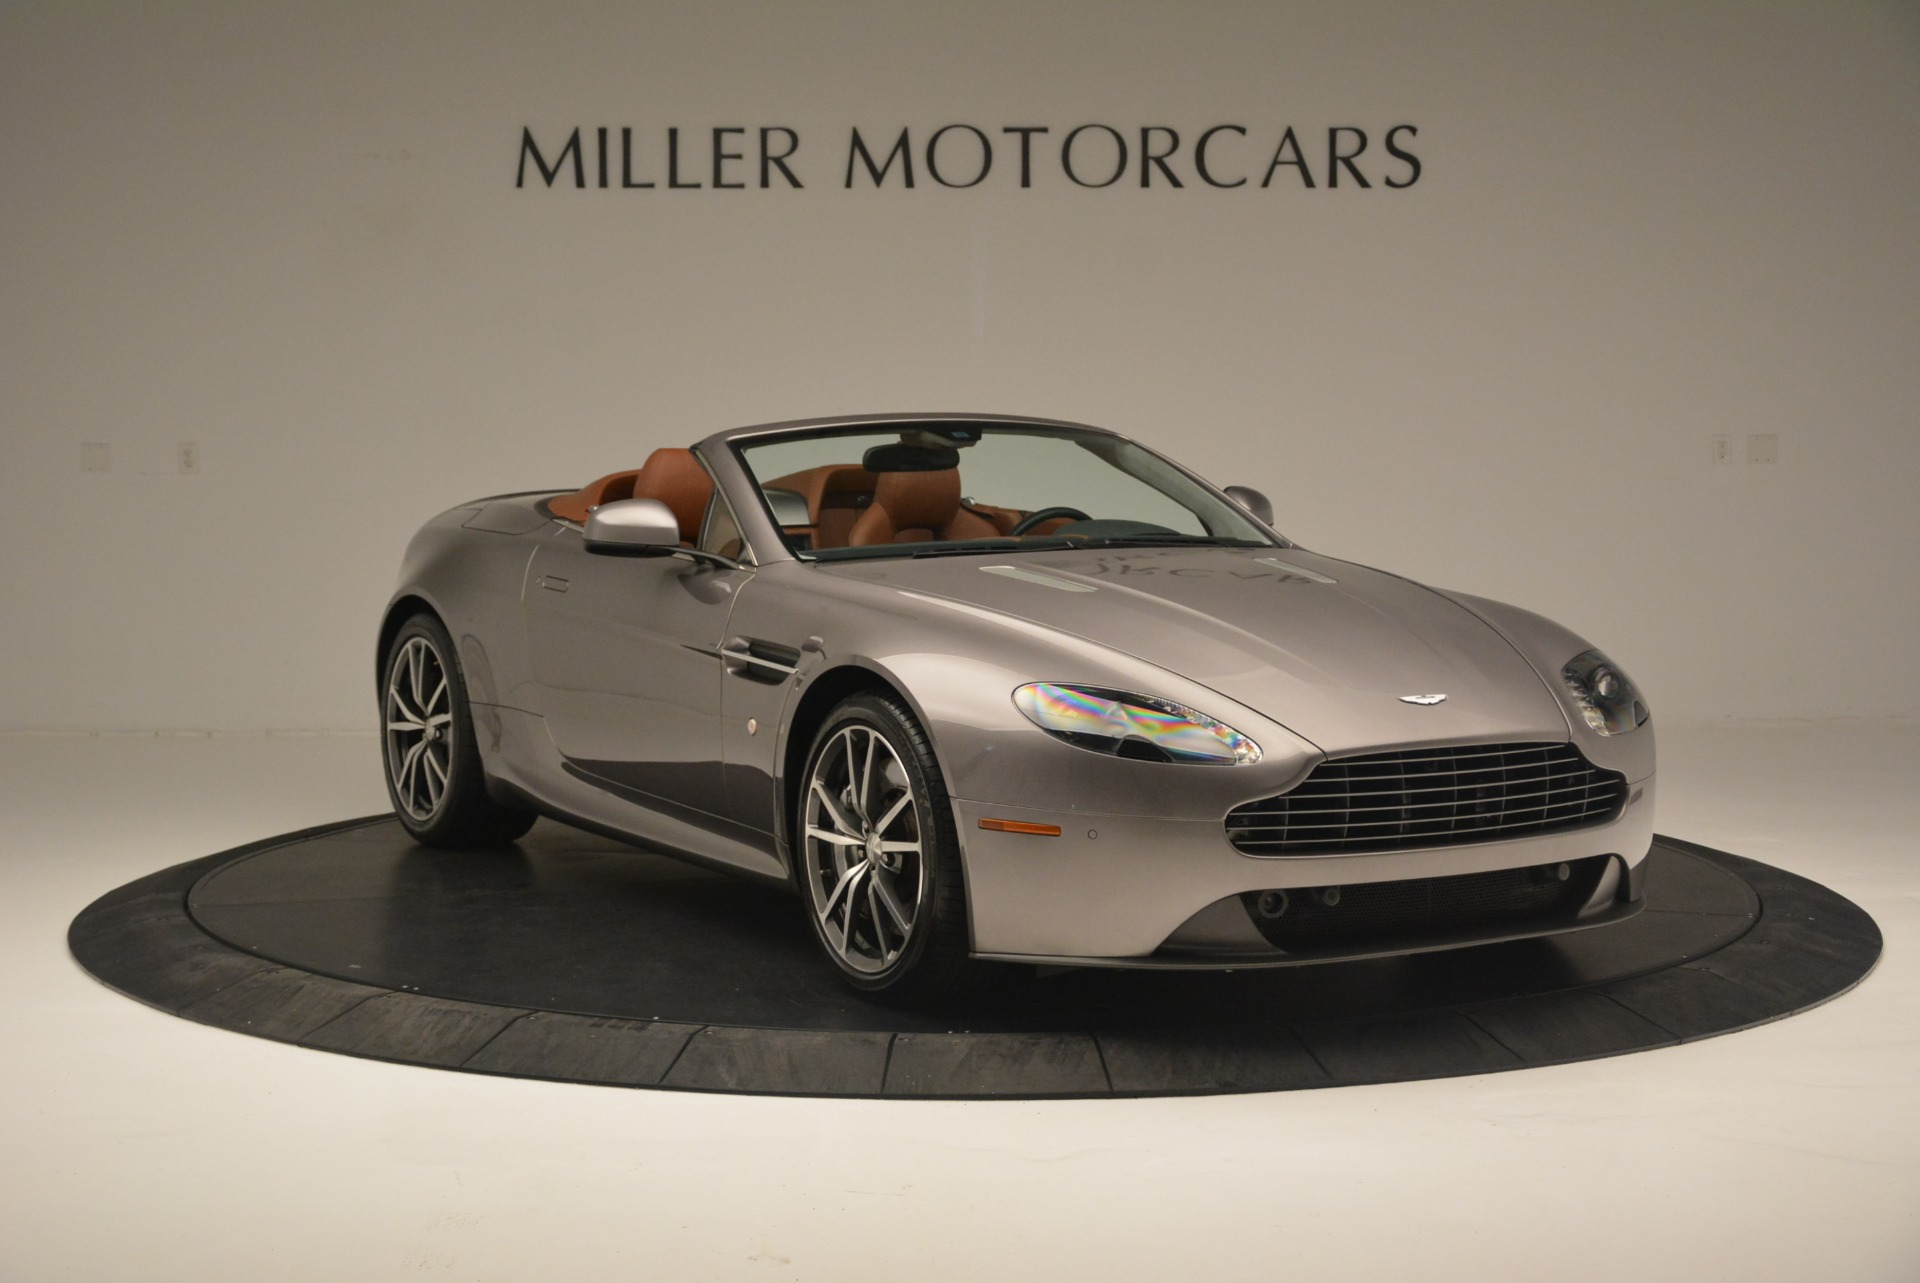 Used 2015 Aston Martin V8 Vantage Roadster For Sale In Greenwich, CT 2463_p11